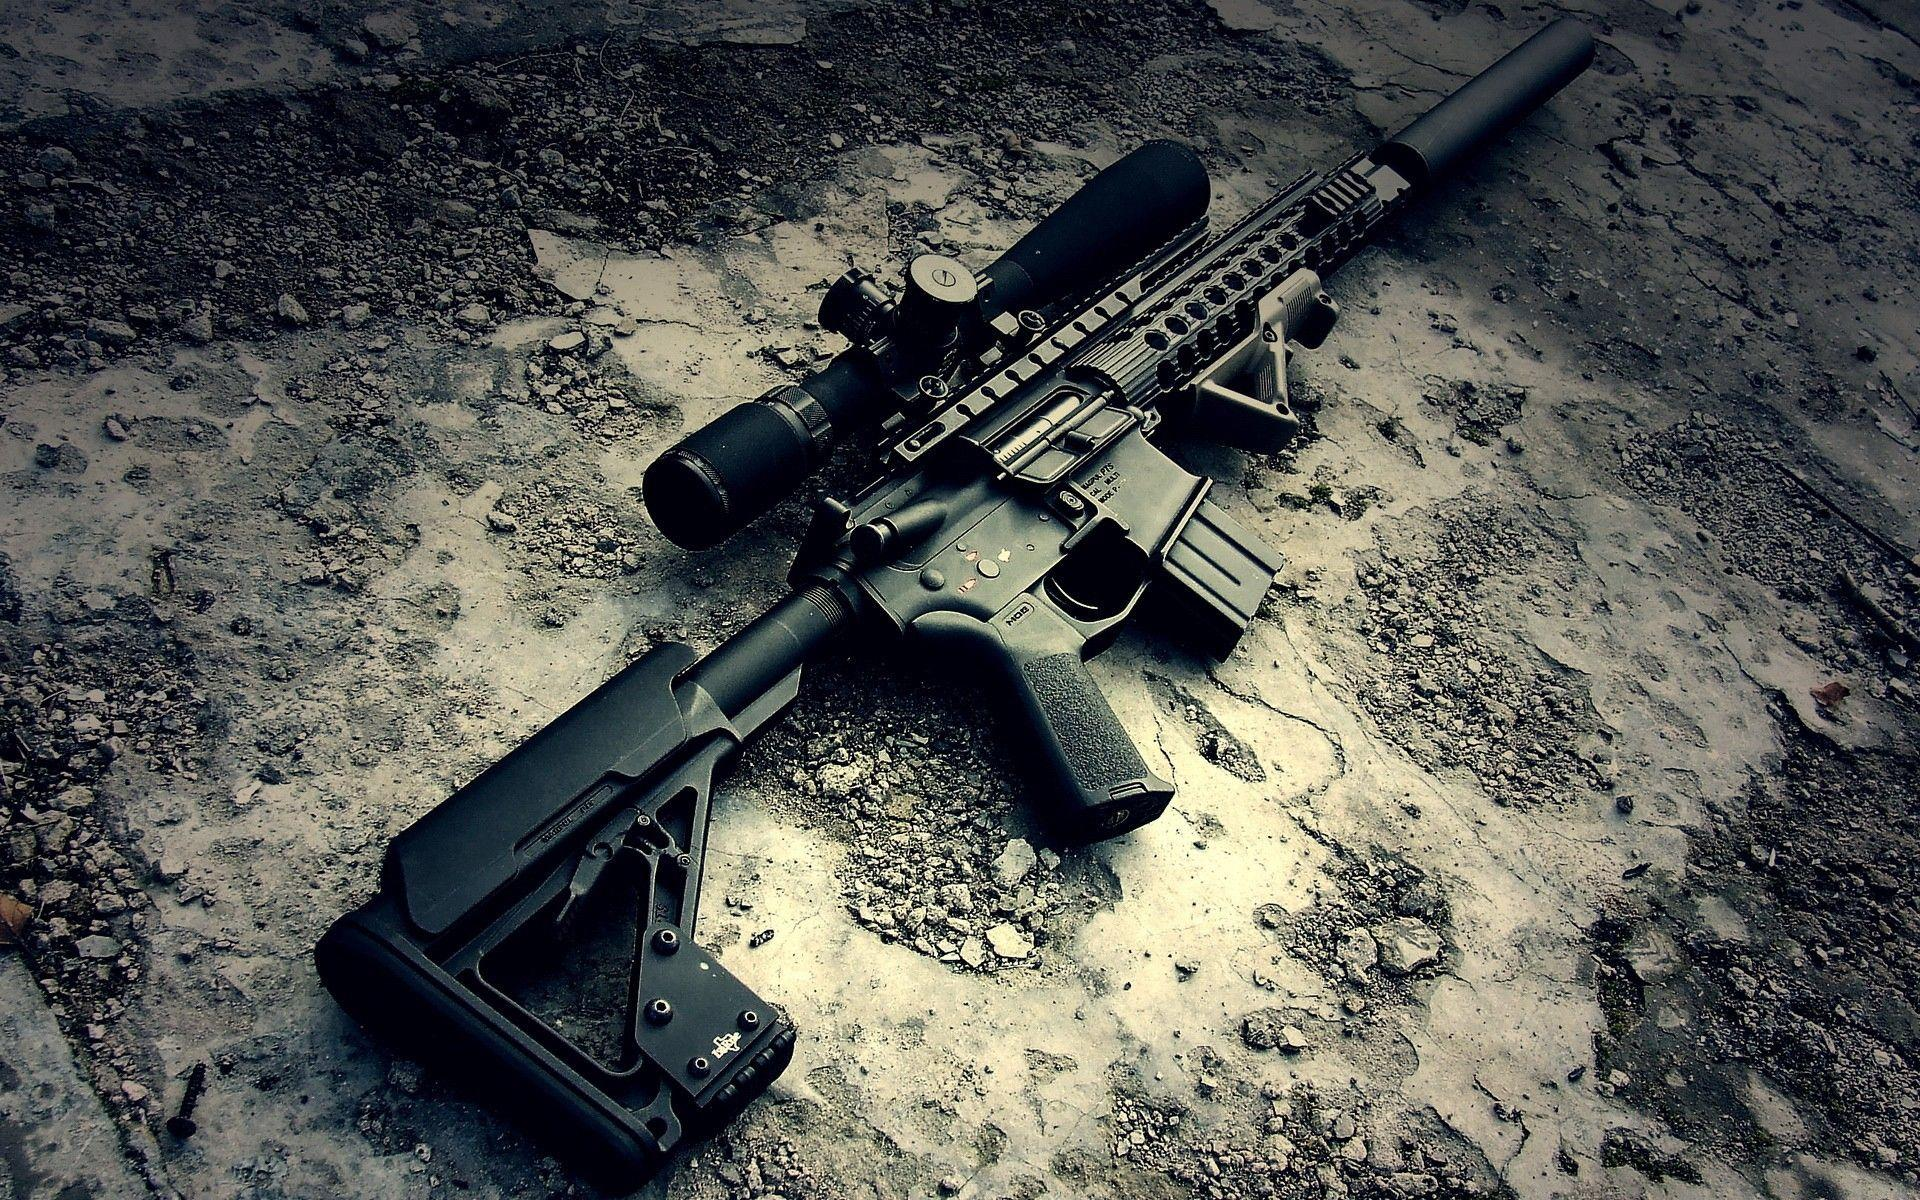 Your First Airsoft M4 Rifle, Your First Airsoft M4 Rifle: Setup Process and Buying Guide